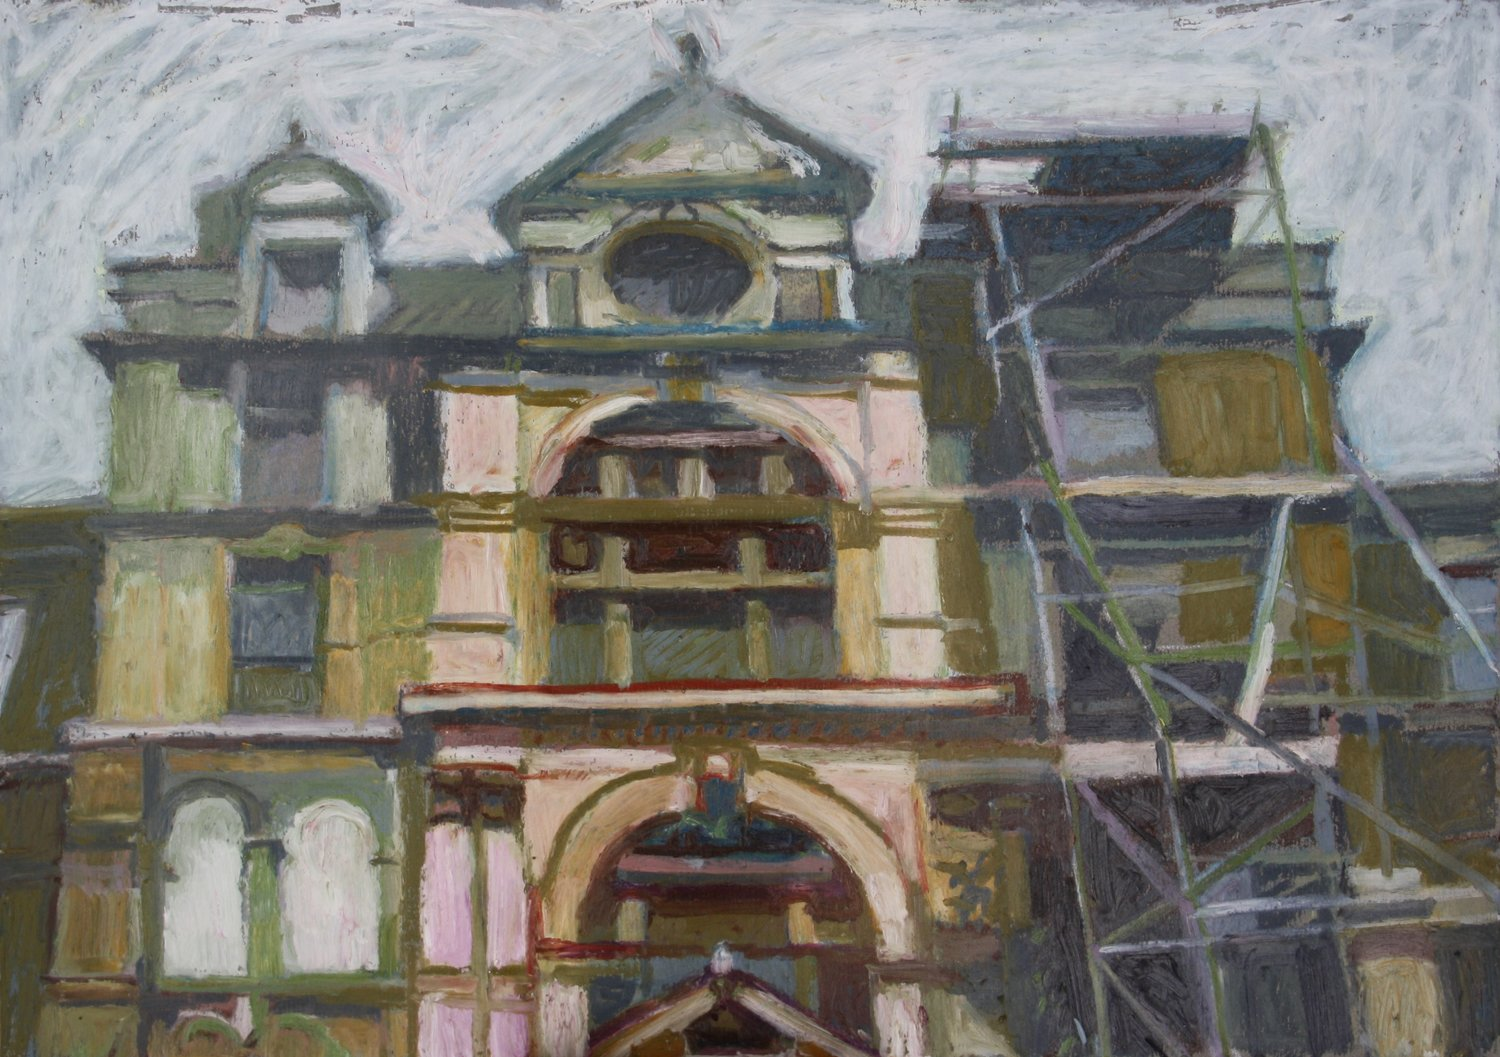 'Coal Exchange east entrance', Sebastian Aplin, Oil pastel on paper, 30 x 42 x 3 cm